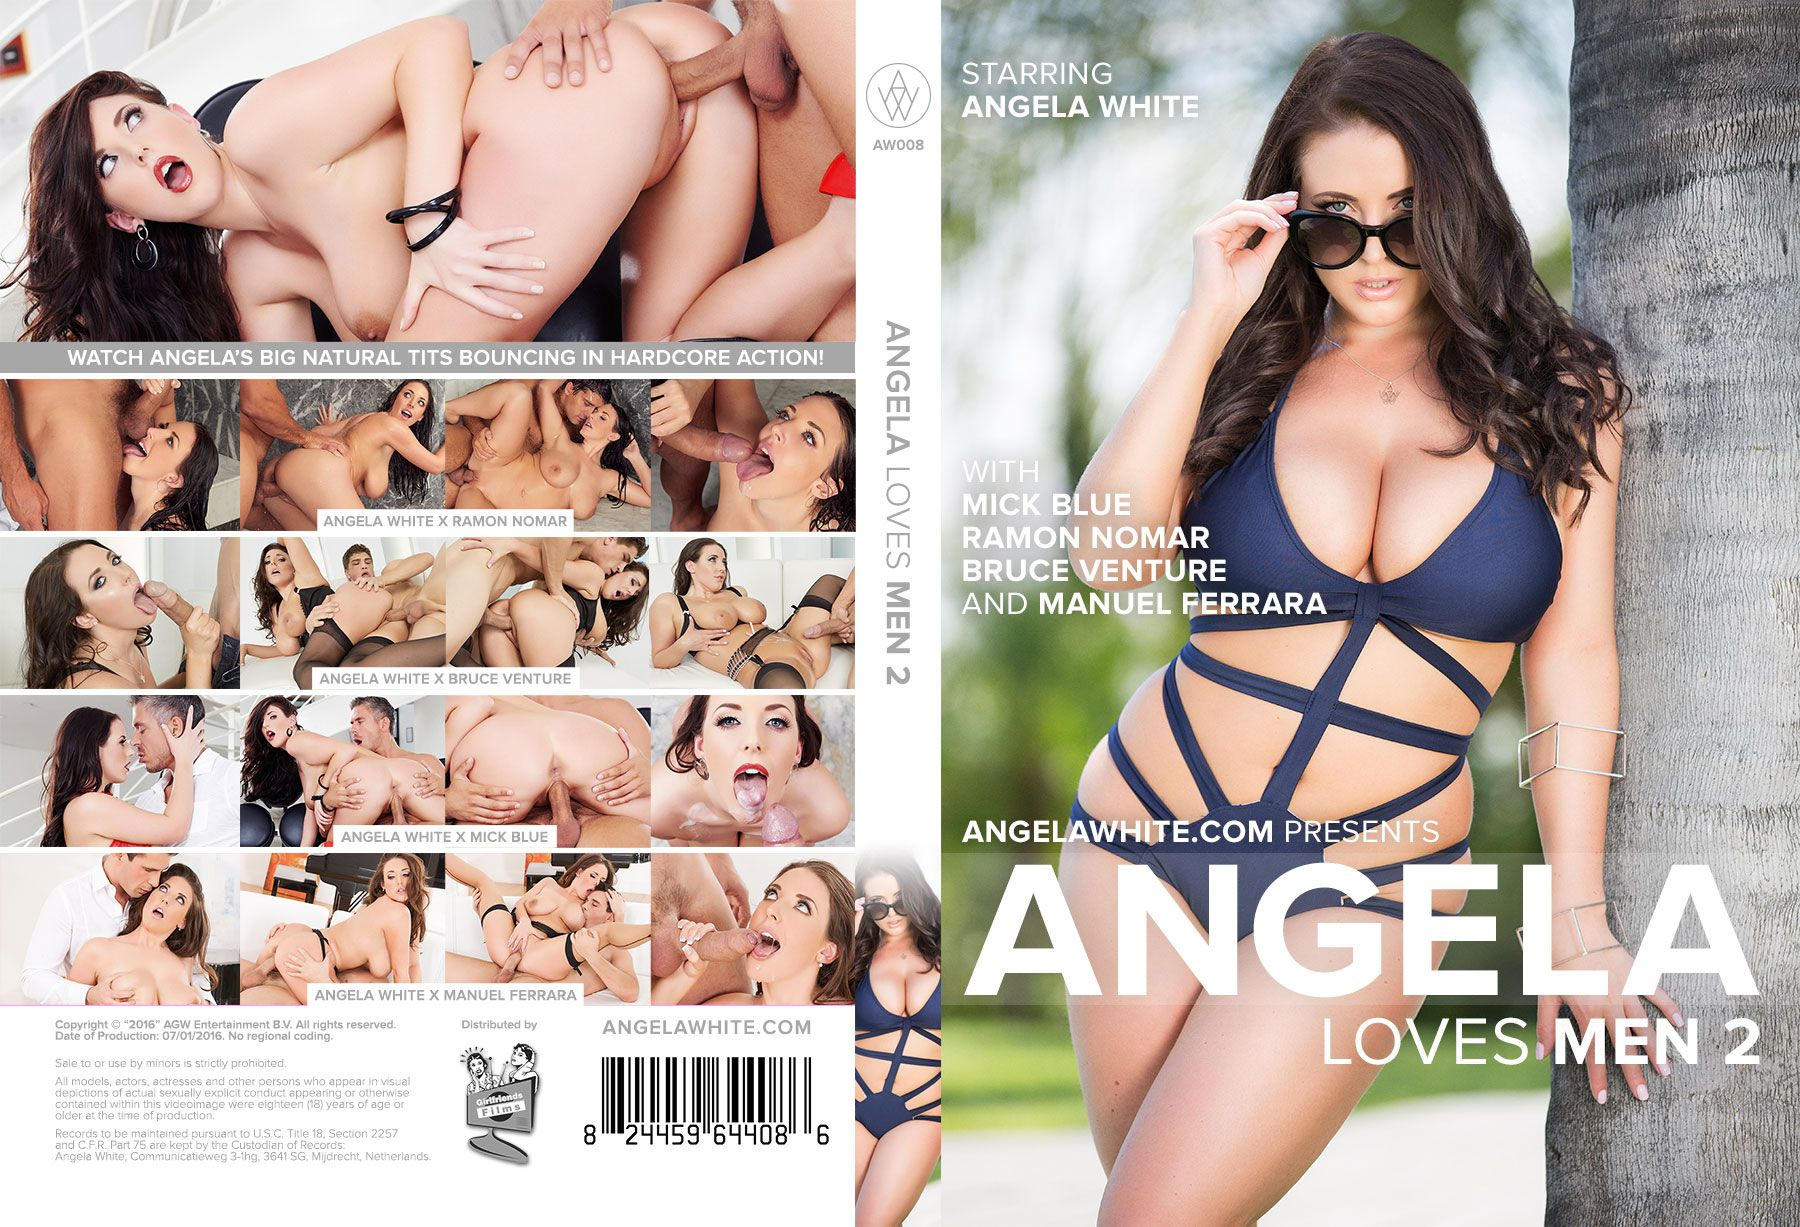 Angela white loves women